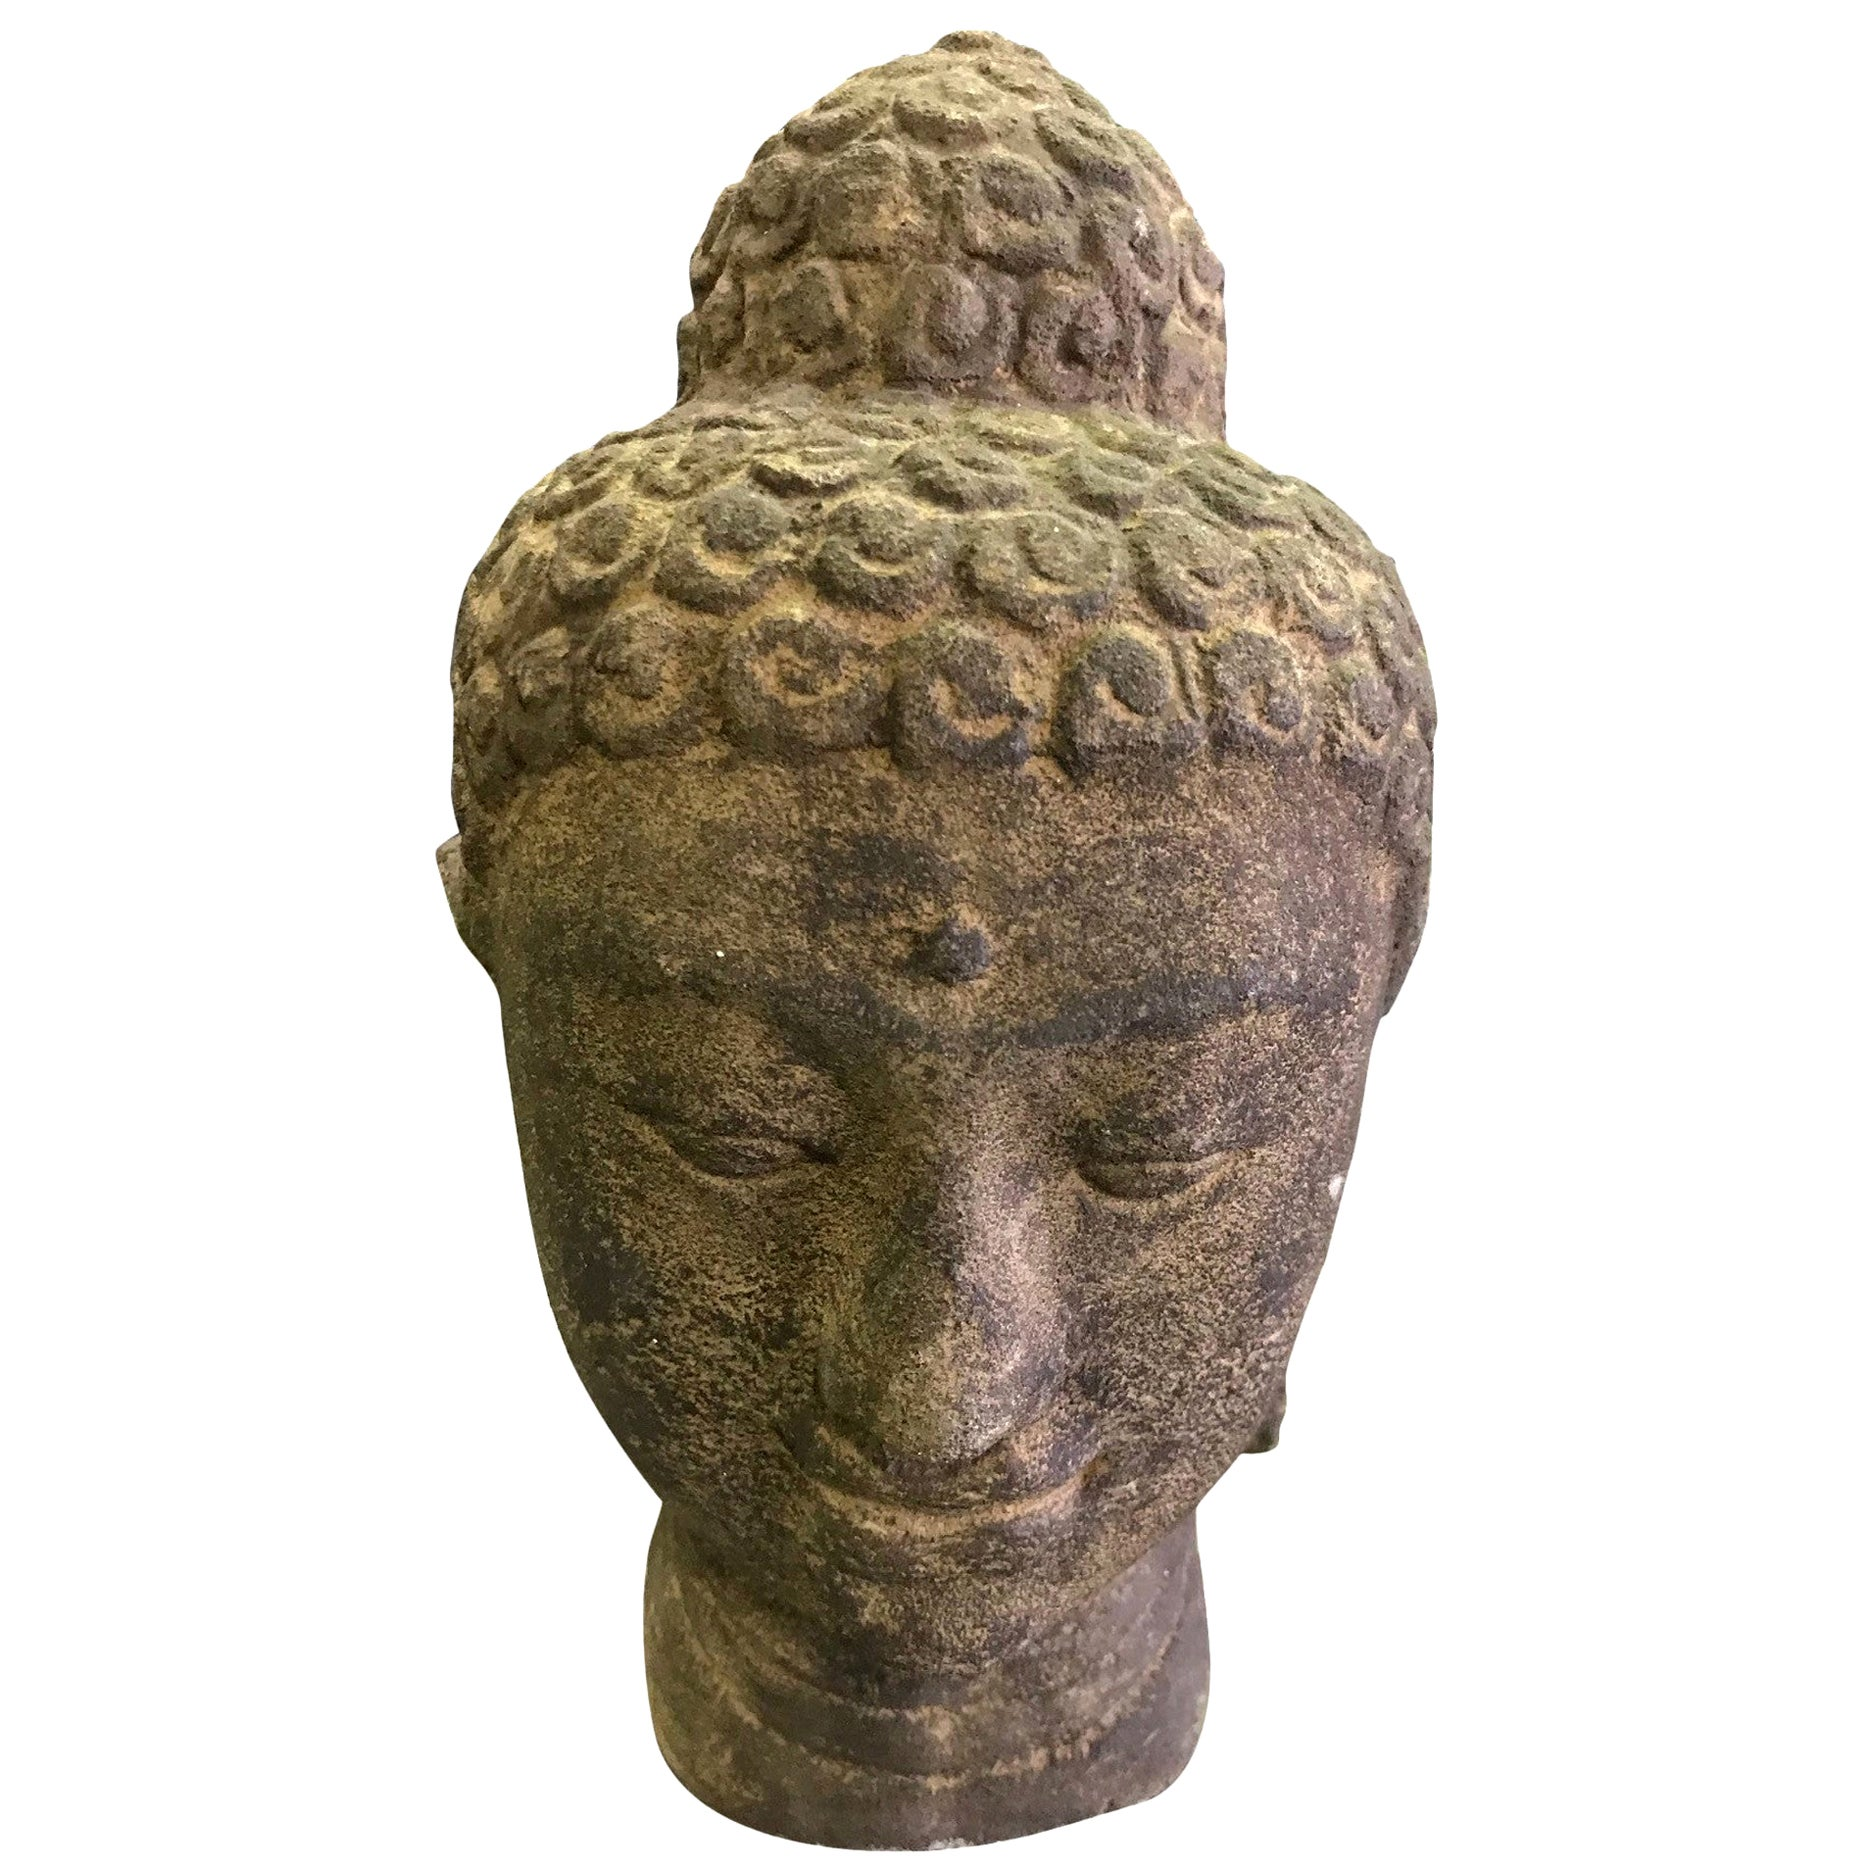 Stone Carved Head of Buddha Sculpture